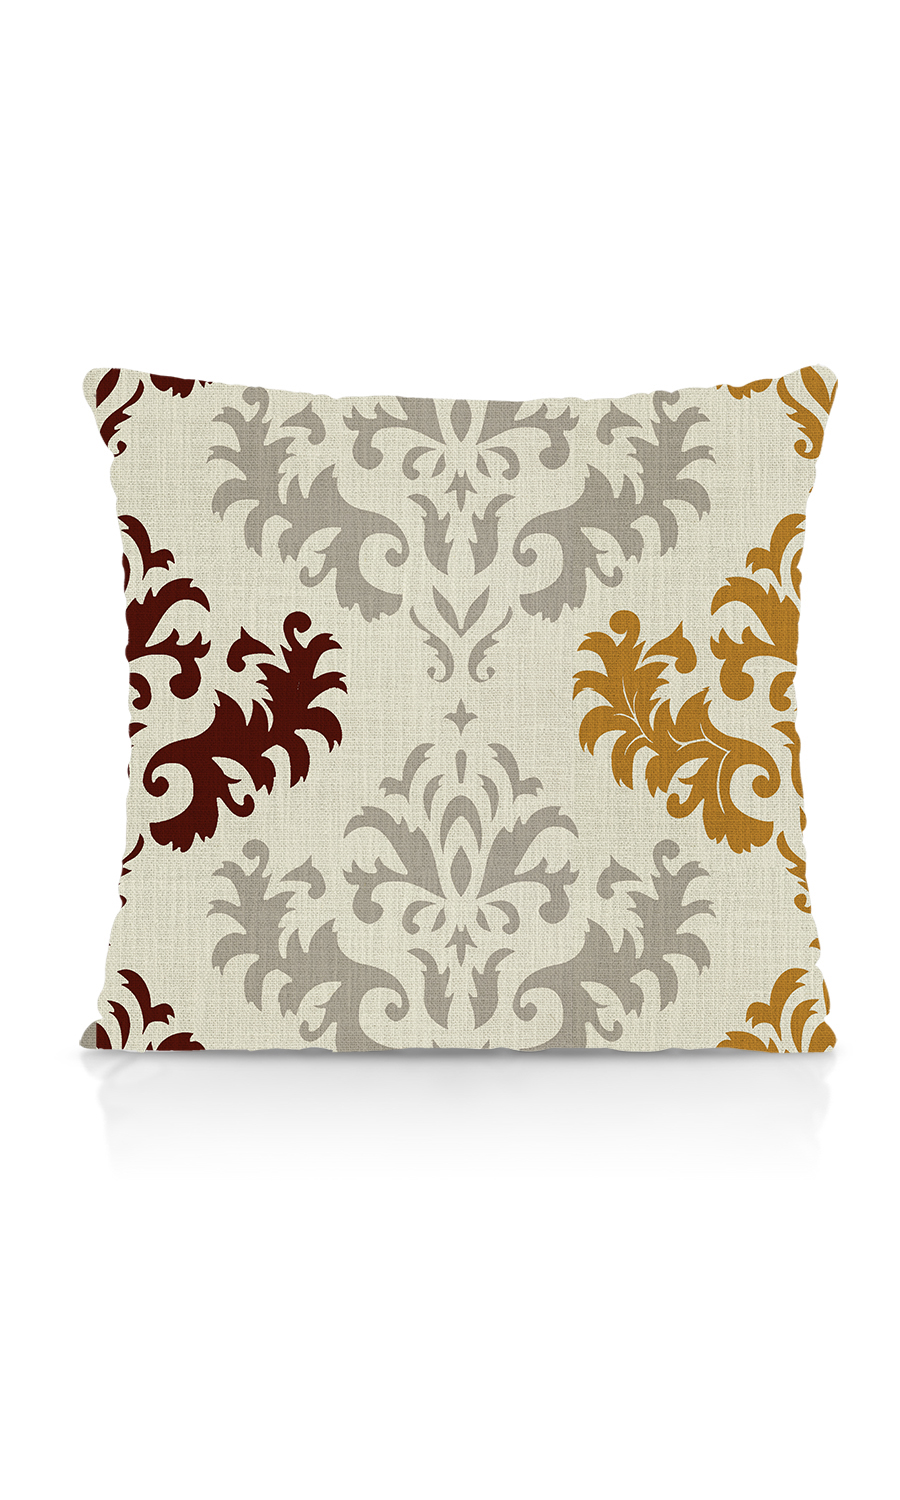 Printed Cushions For Living Room